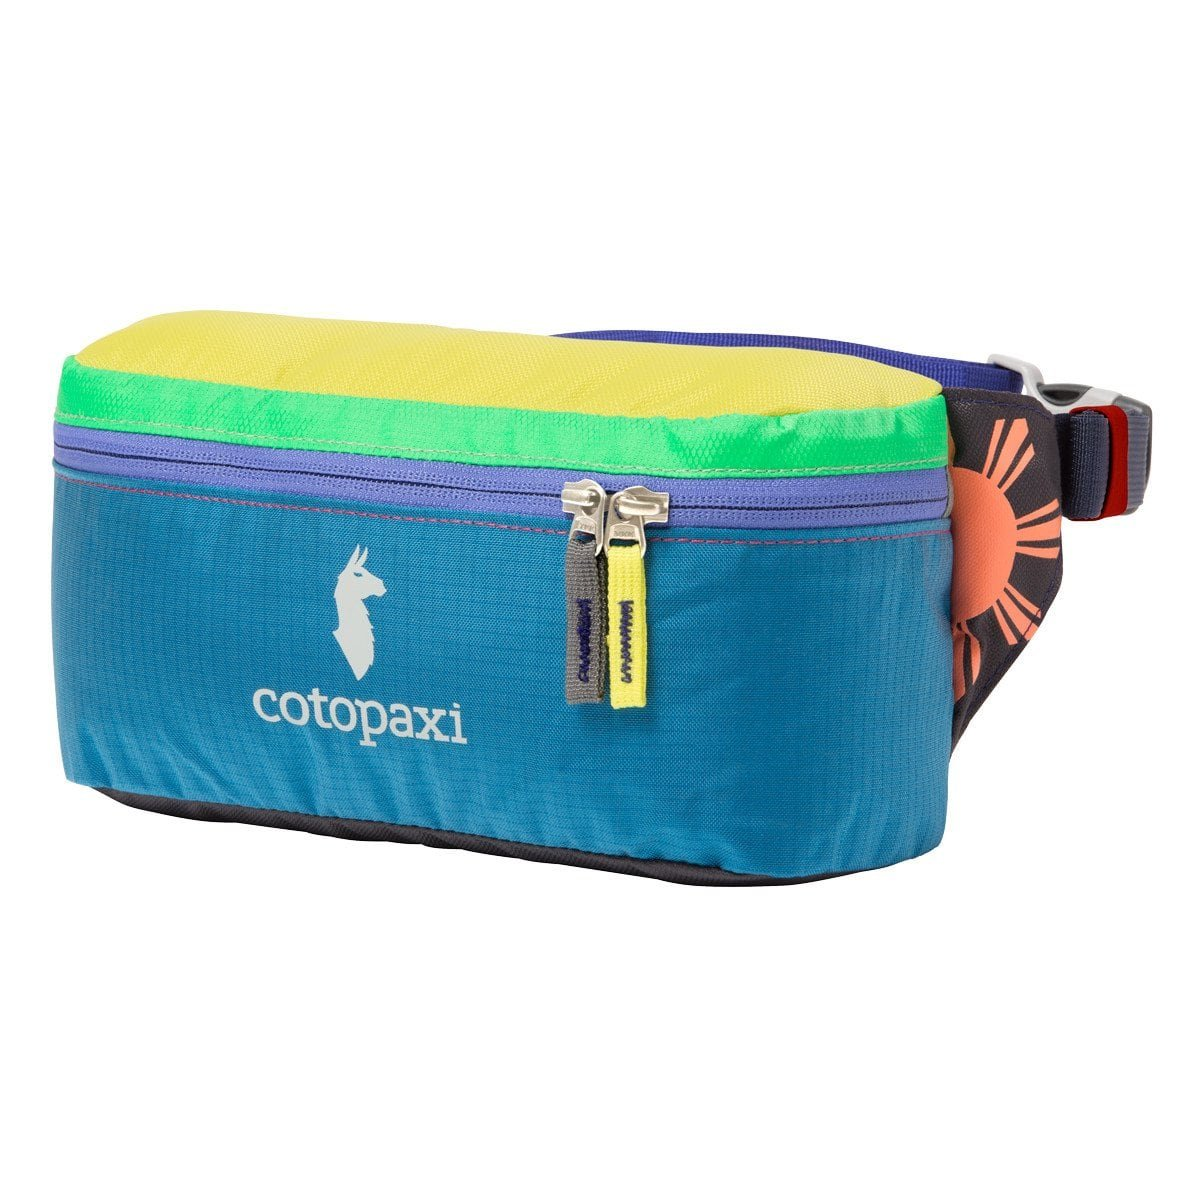 Cotopaxi Del Día Bataan 3L Fanny Pack | Hiking Waist Bag with Del Día Colorway (No Two Products Are The Same)